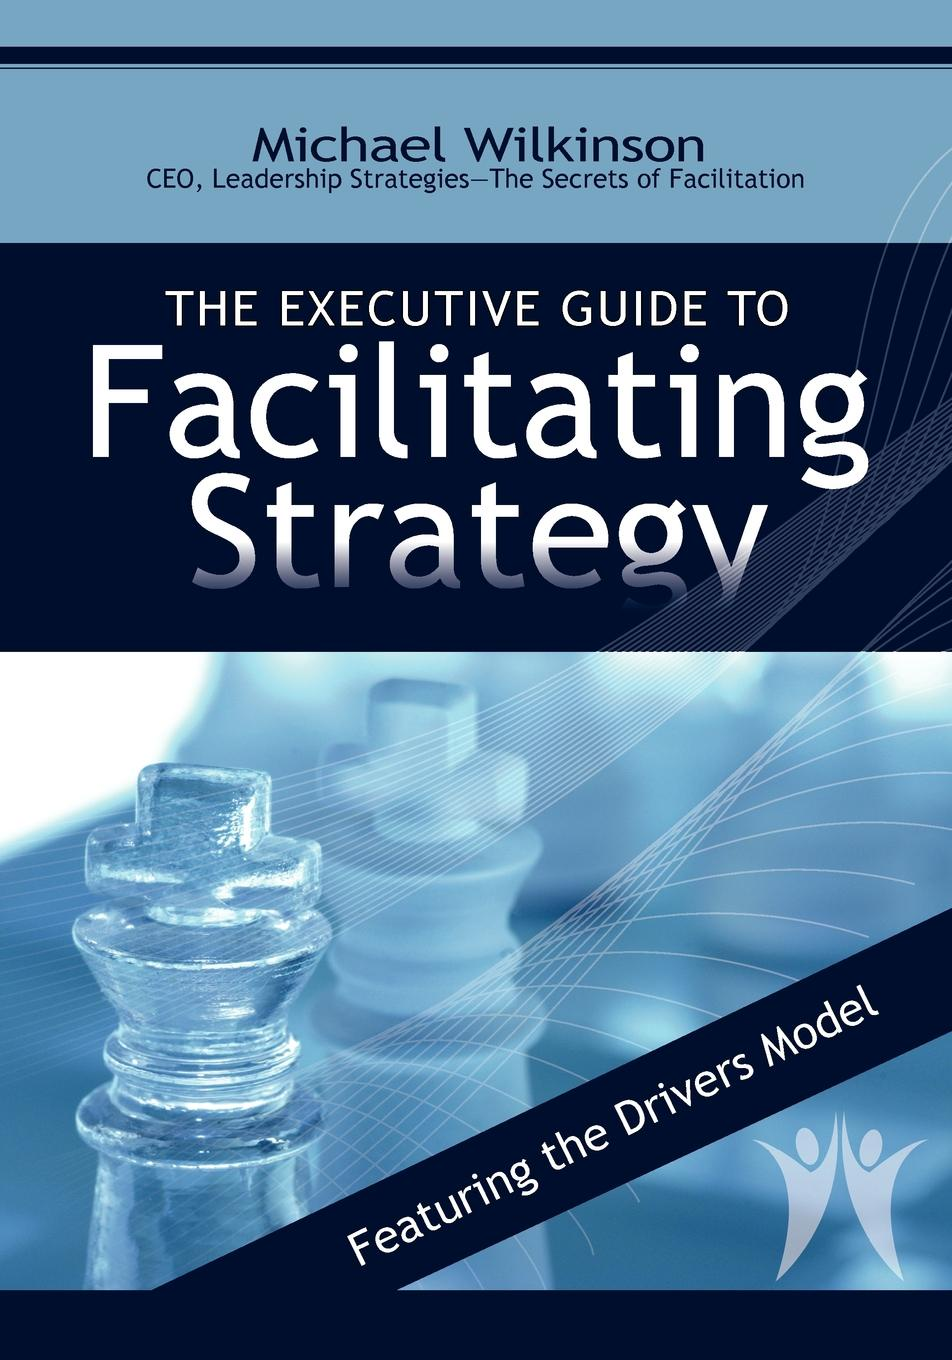 Michael Wilkinson The Executive Guide to Facilitating Strategy edna pasher the complete guide to knowledge management a strategic plan to leverage your company s intellectual capital